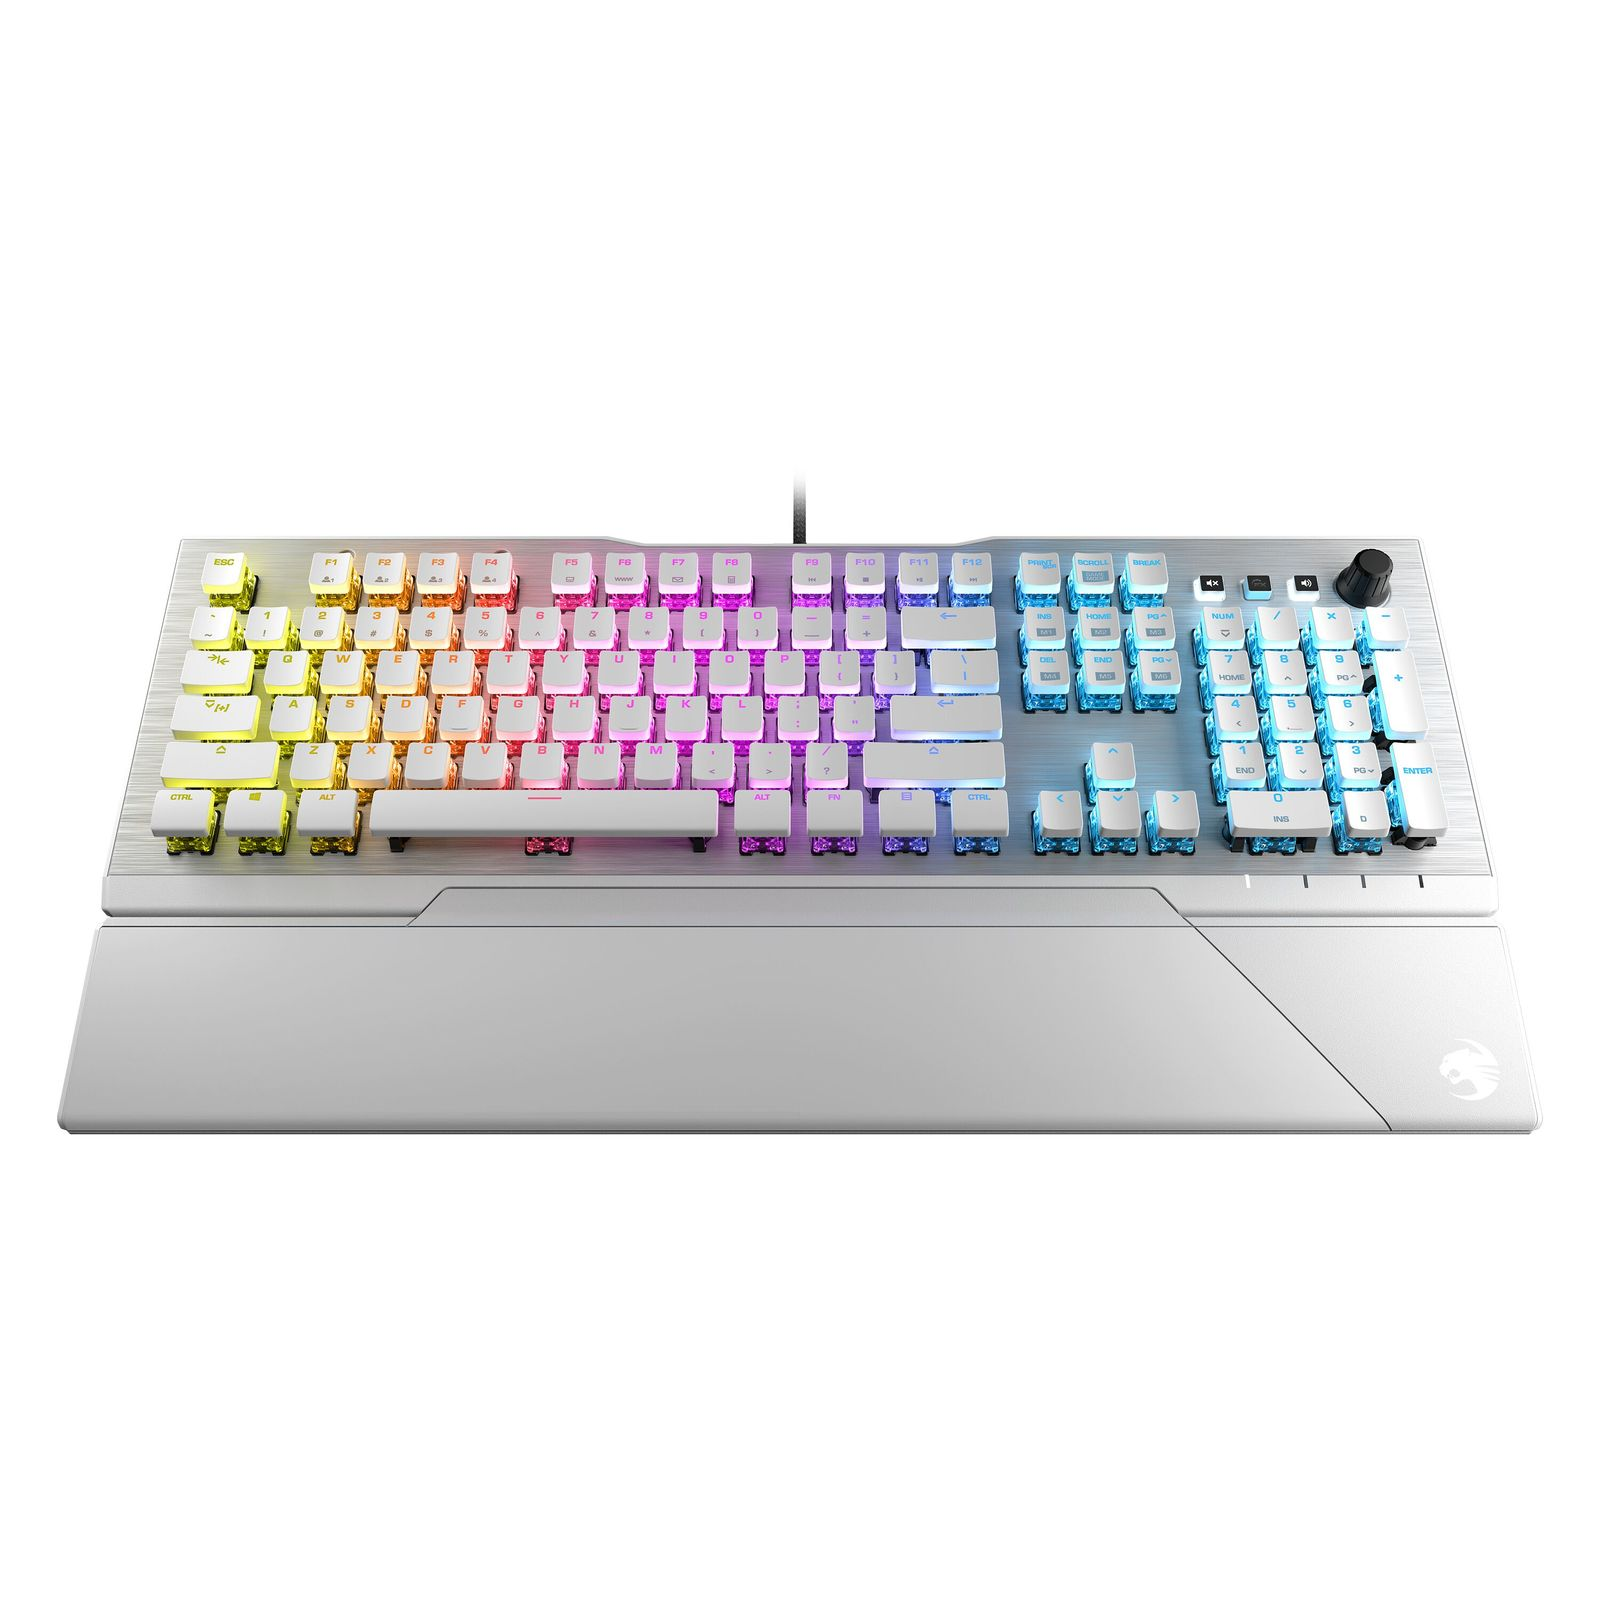 ROCCAT Vulcan 122 AIMO RGB Mechanical Gaming Keyboard - White for PC image